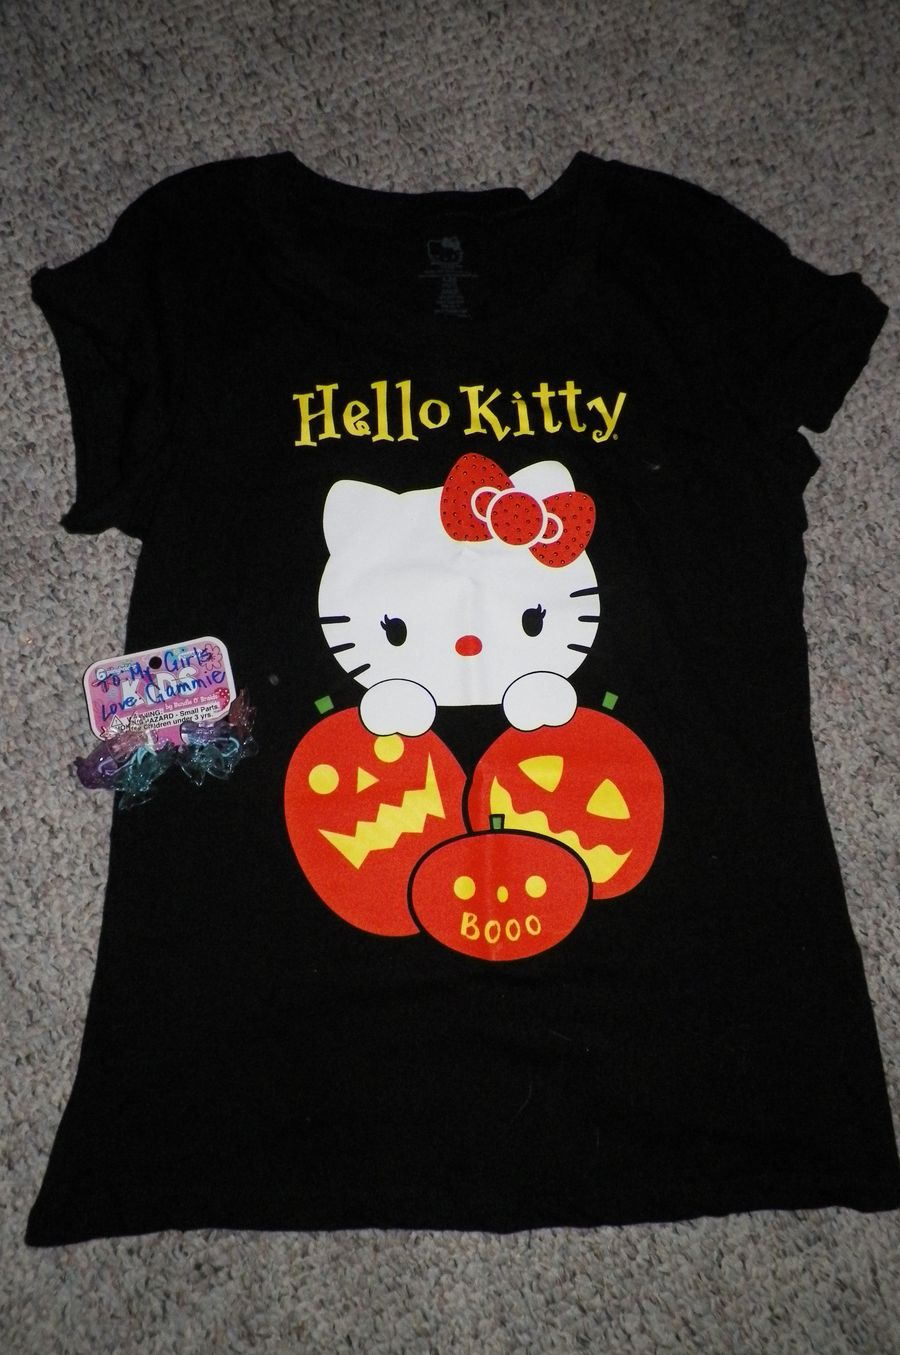 look a kitty shirt for ME